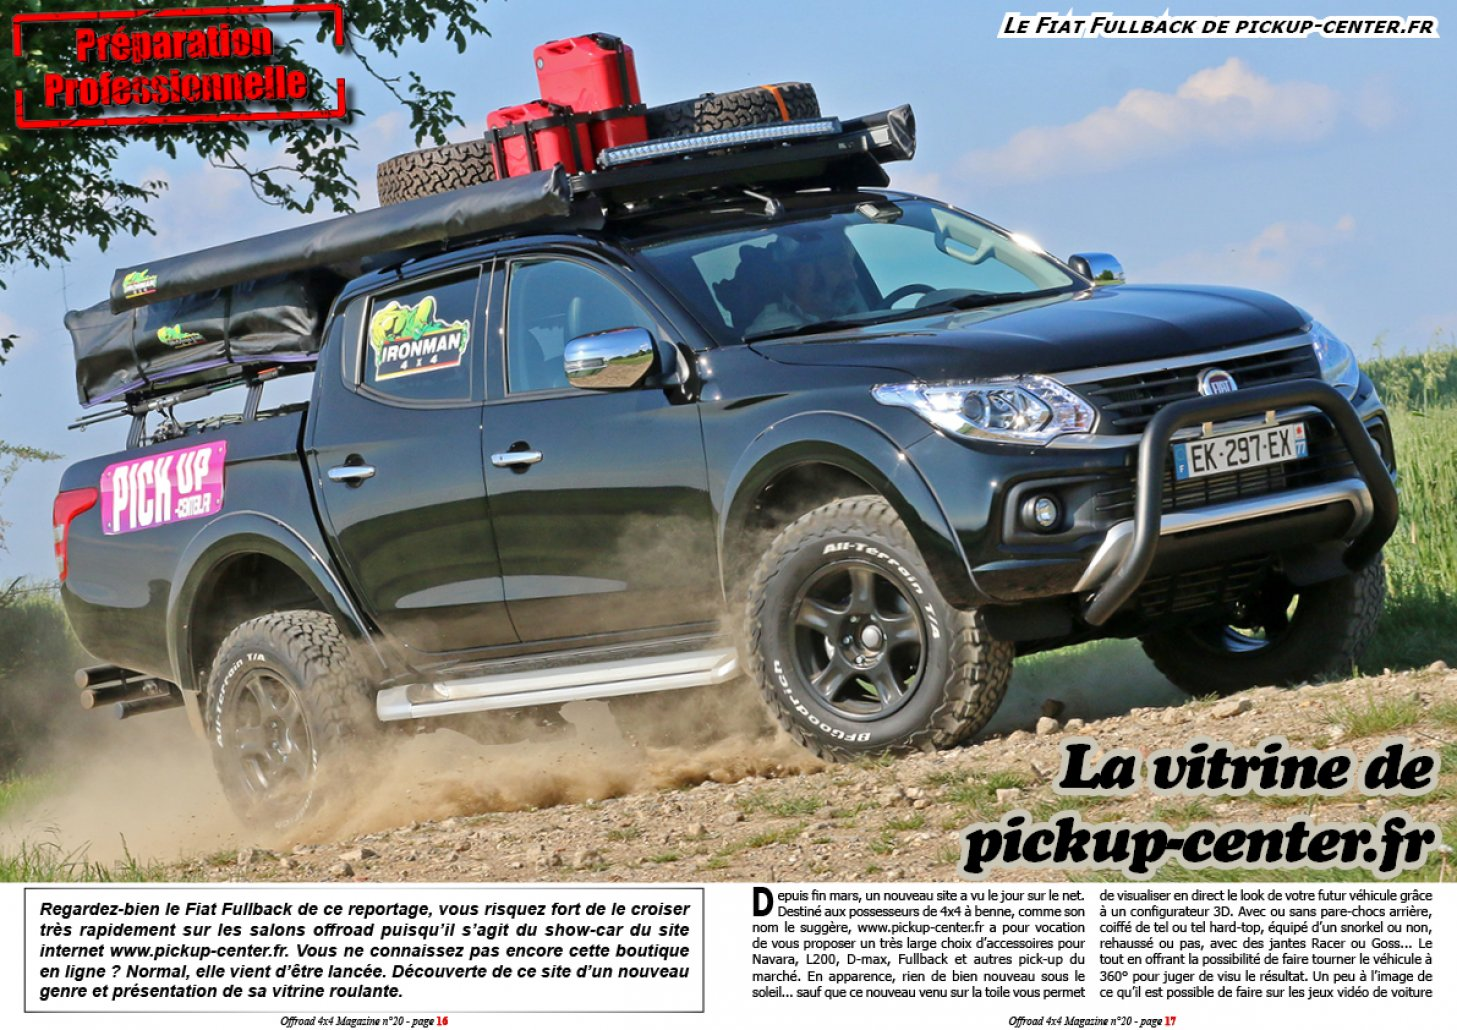 Le Fiat Fullback de pickup-center.fr